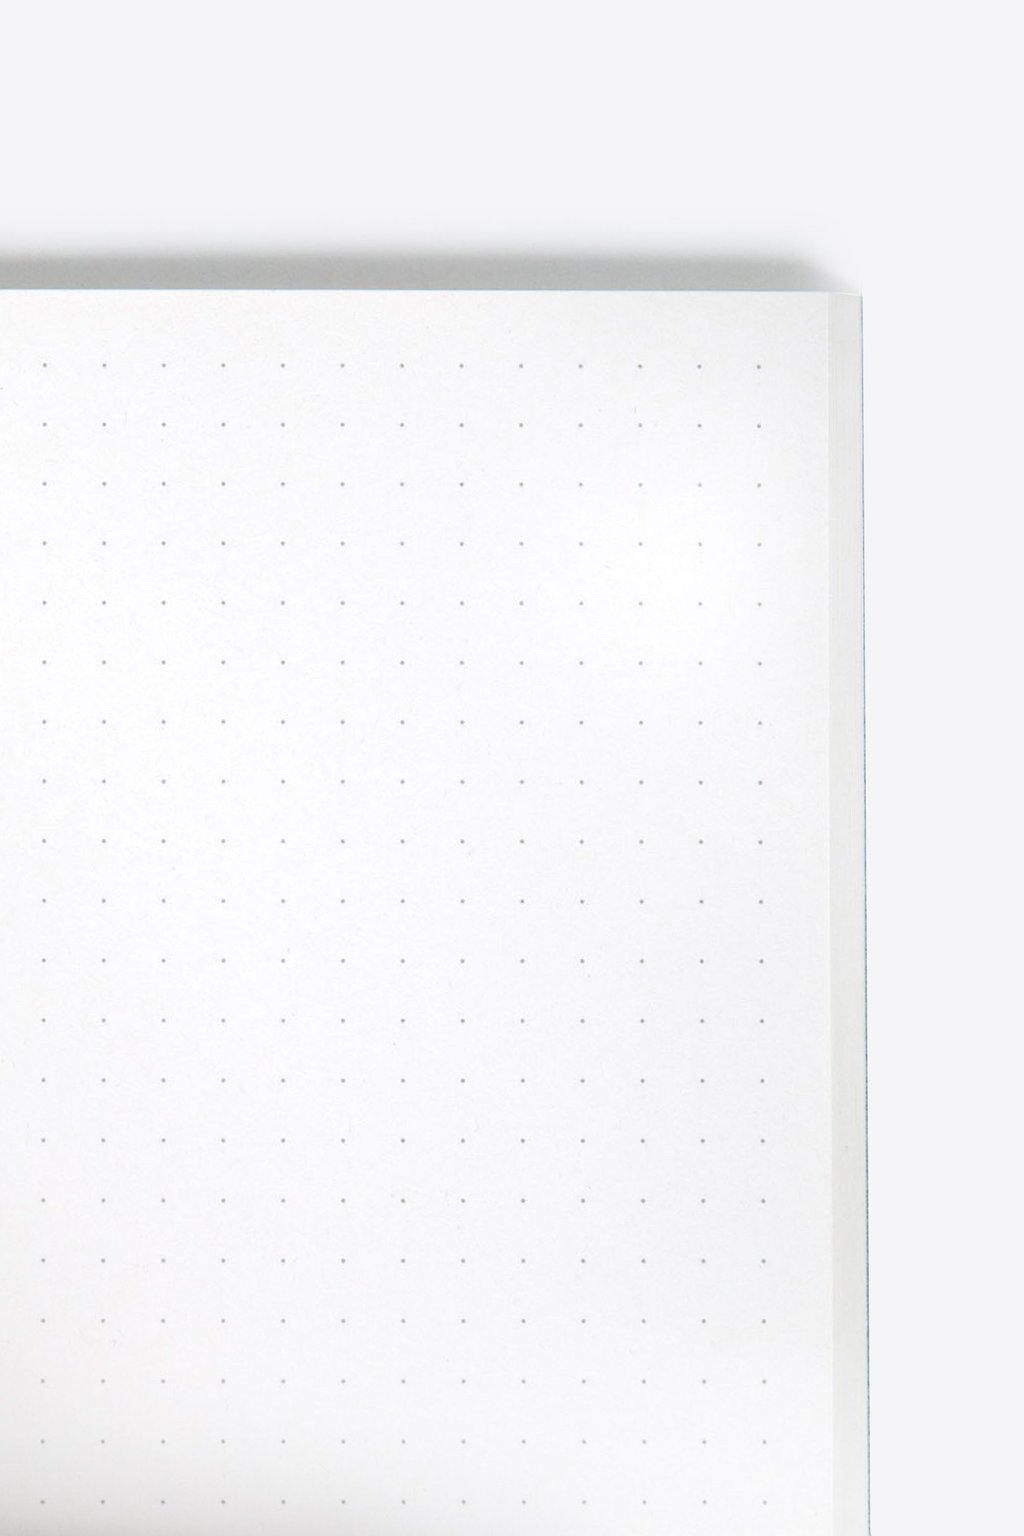 Square Print Grid Notebook 1856 Gray 3